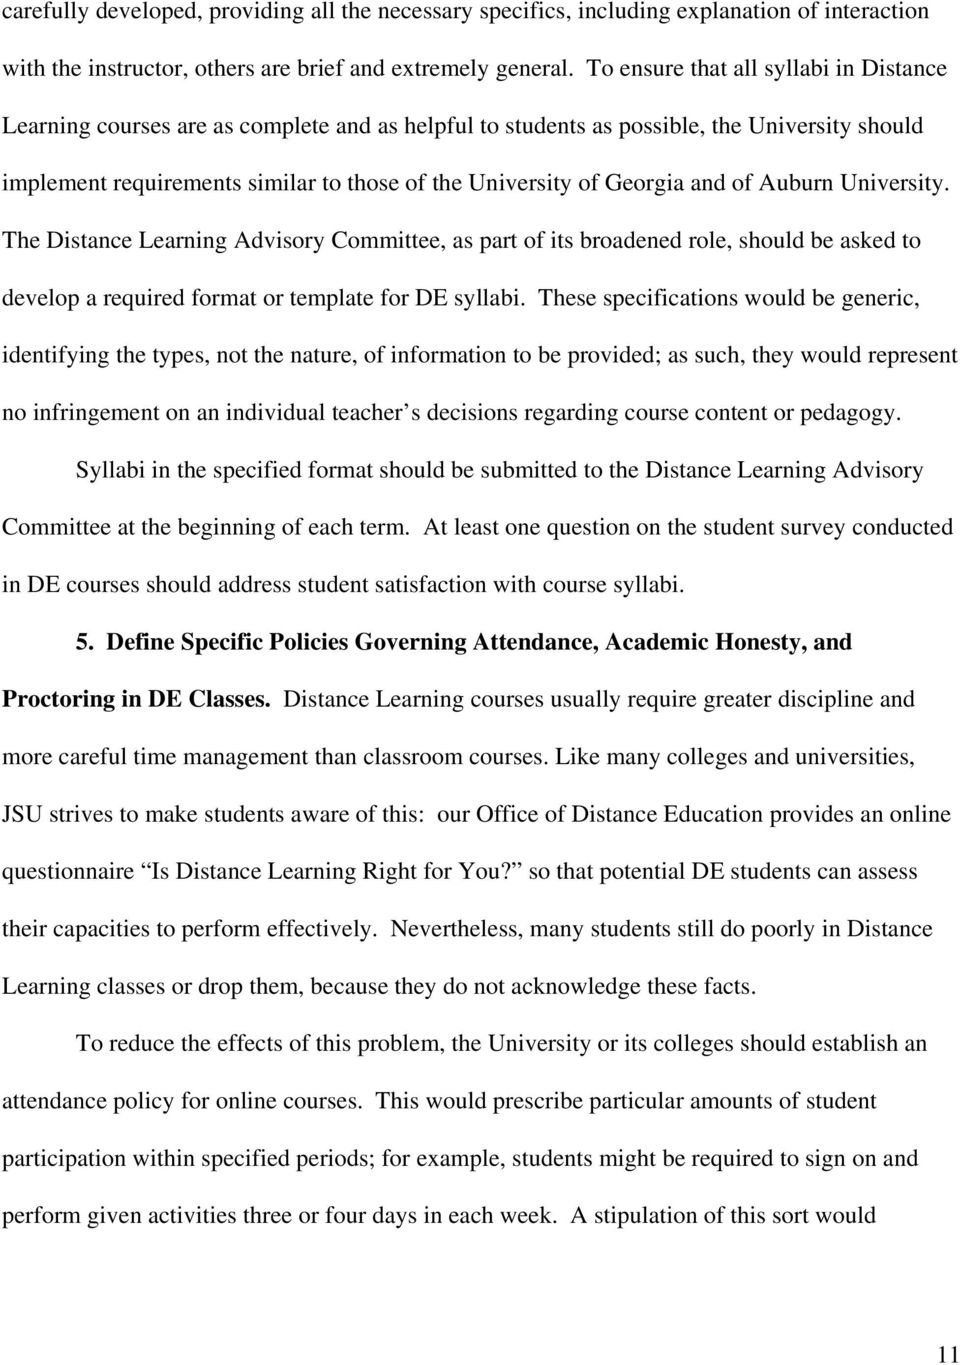 Georgia and of Auburn University. The Distance Learning Advisory Committee, as part of its broadened role, should be asked to develop a required format or template for DE syllabi.